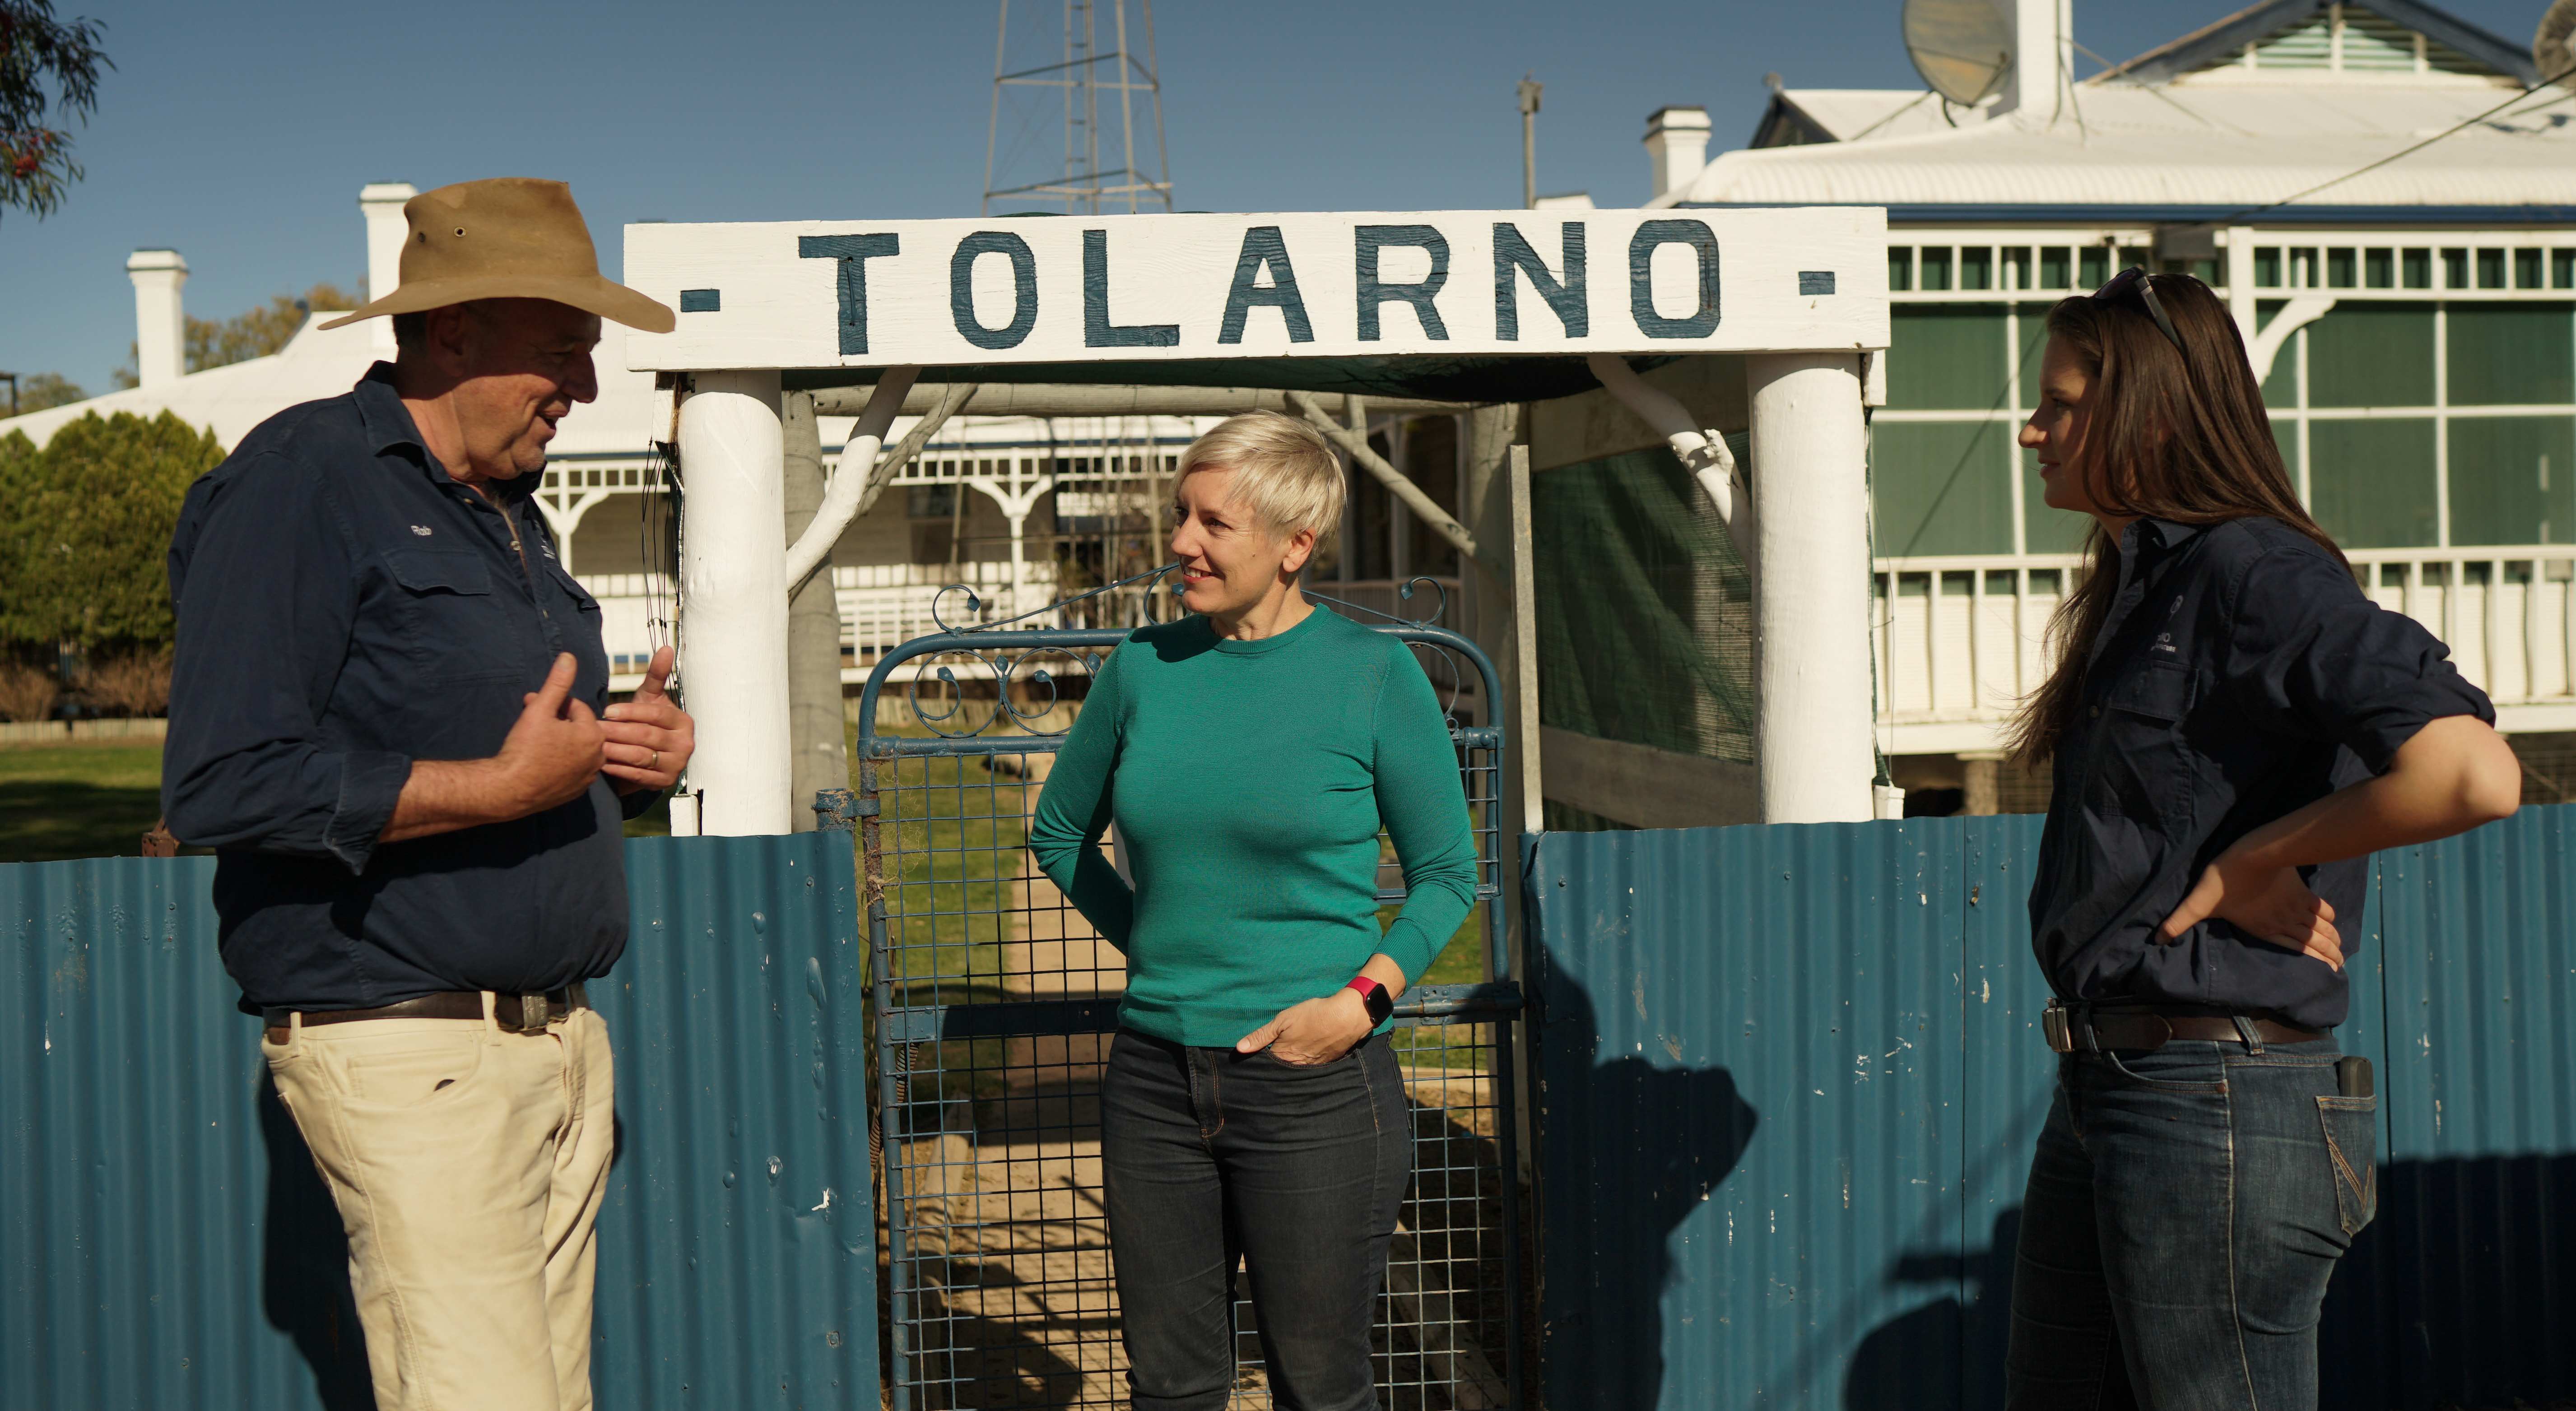 Arriving at Tolarno with Rob and Kate McBride